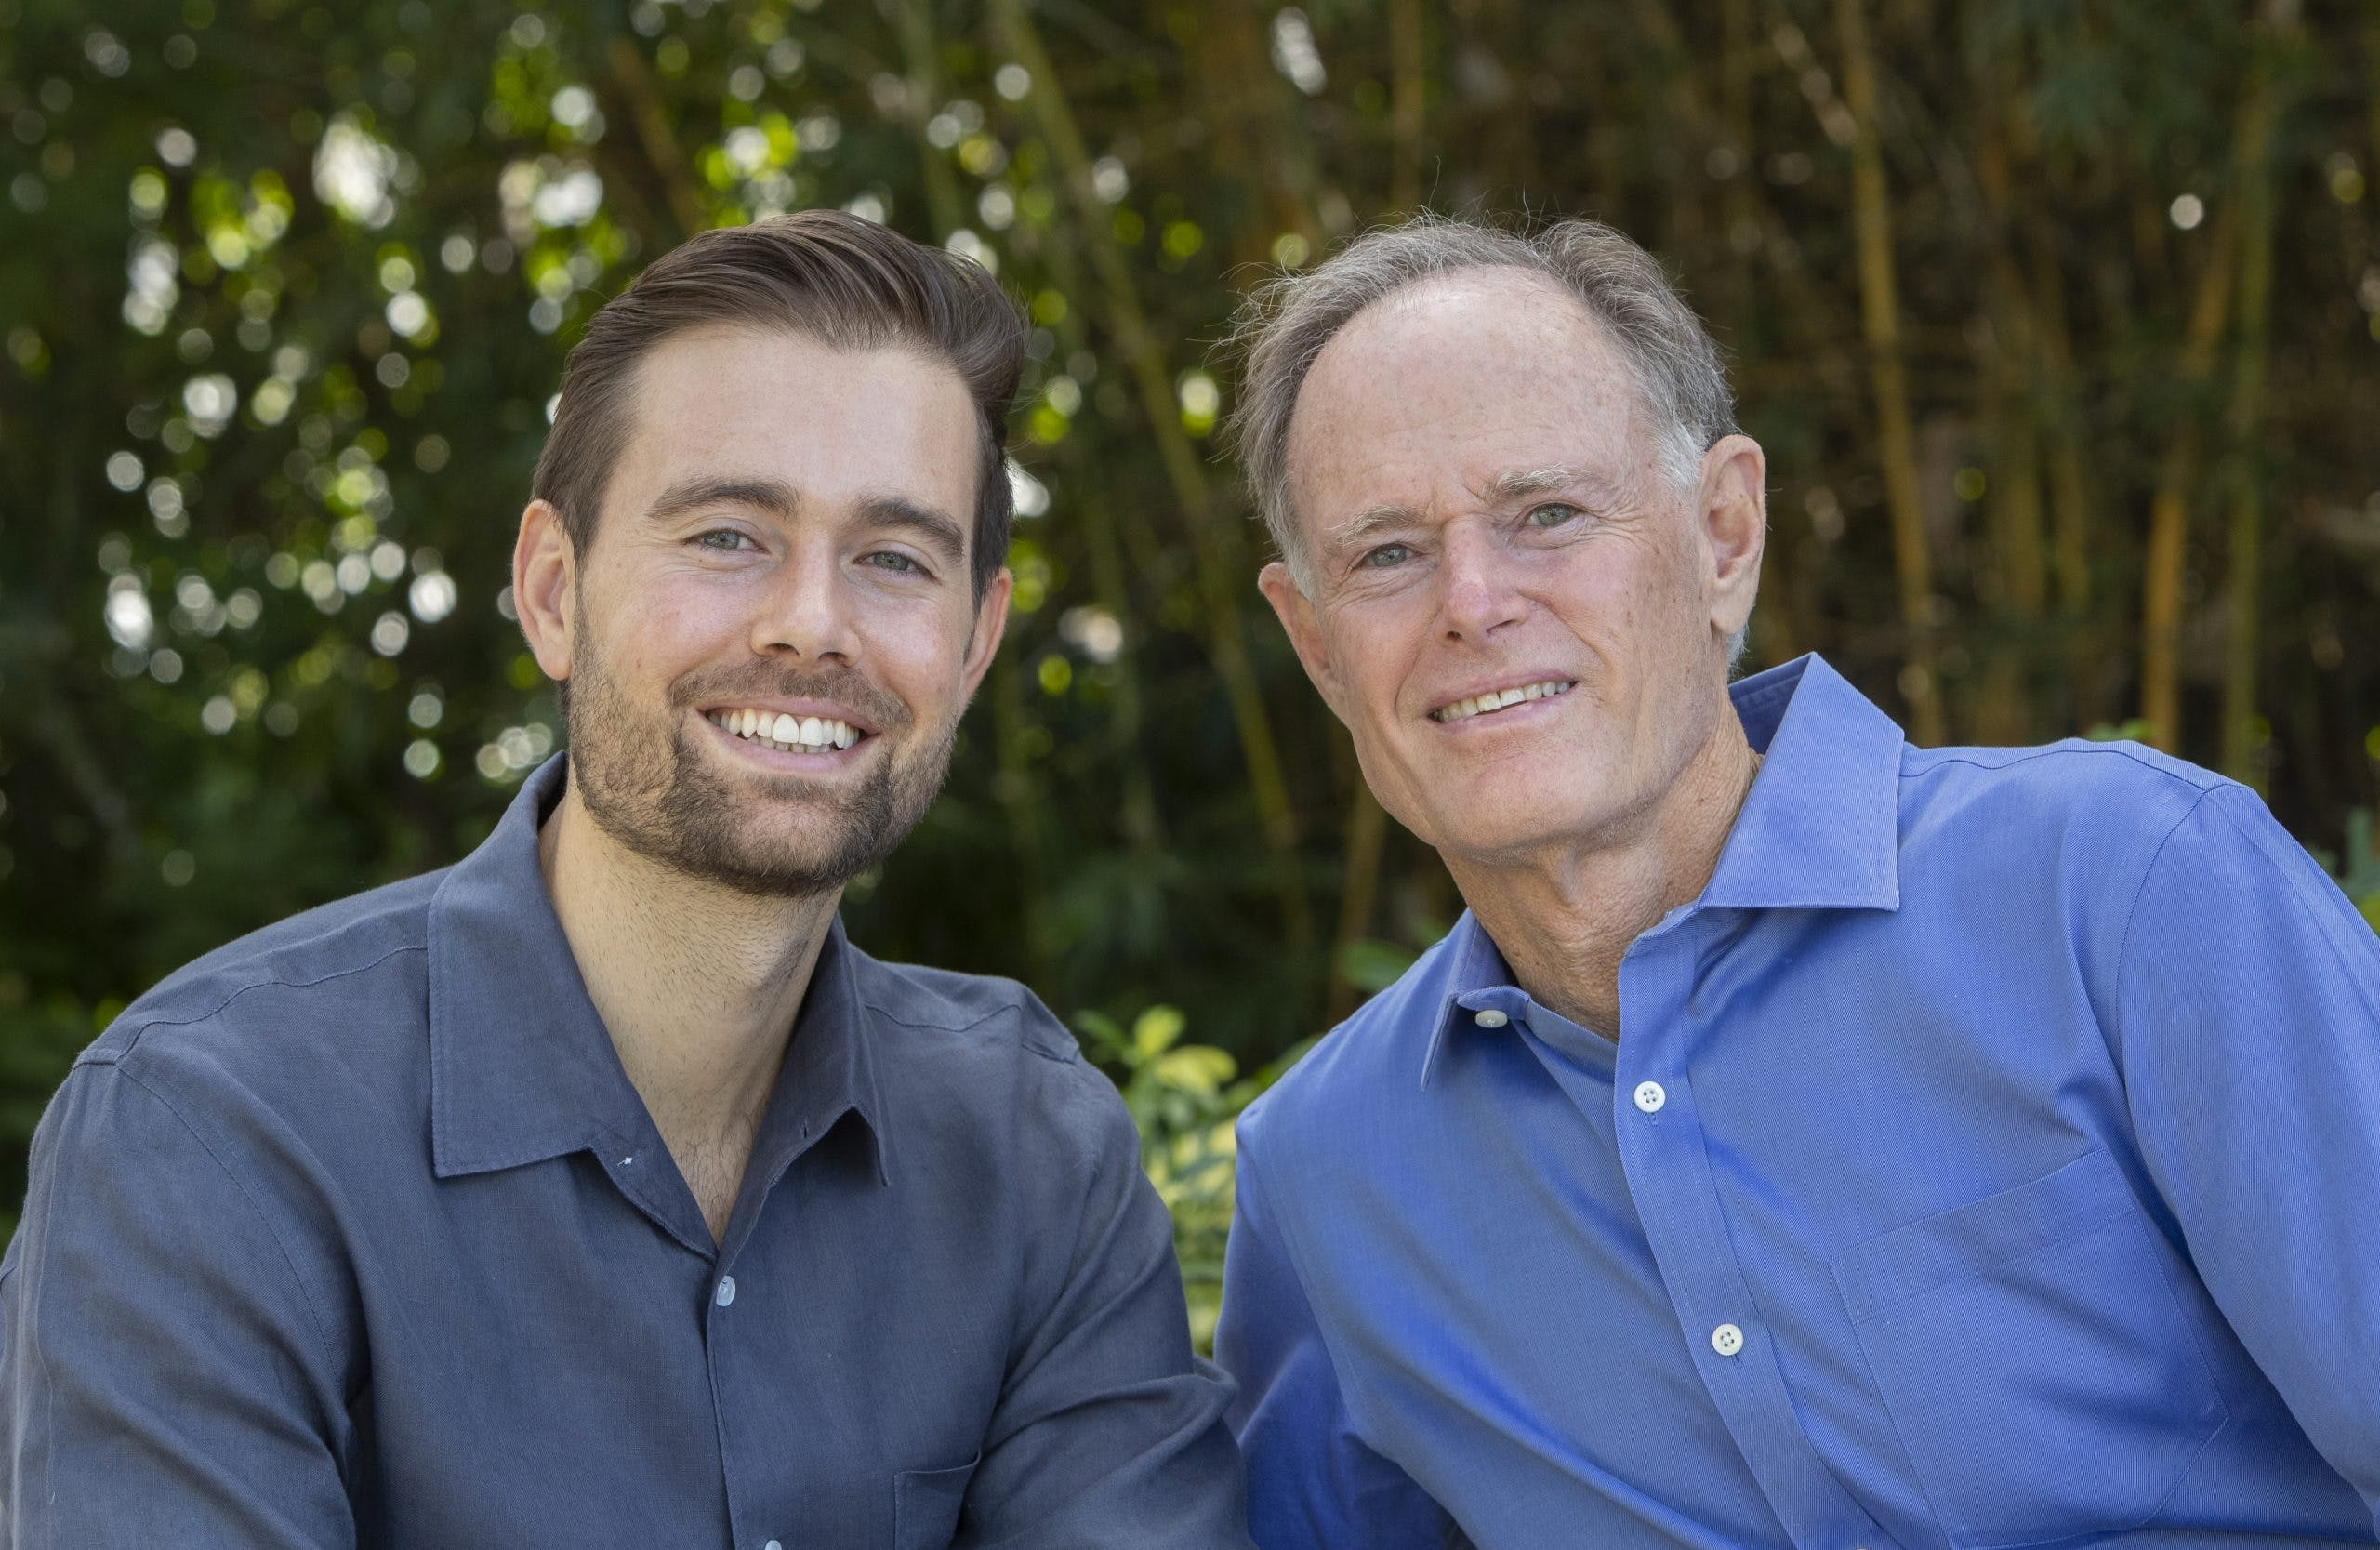 Drs. Austin (left) and David (right) Perlmutter, authors of Brain Wash